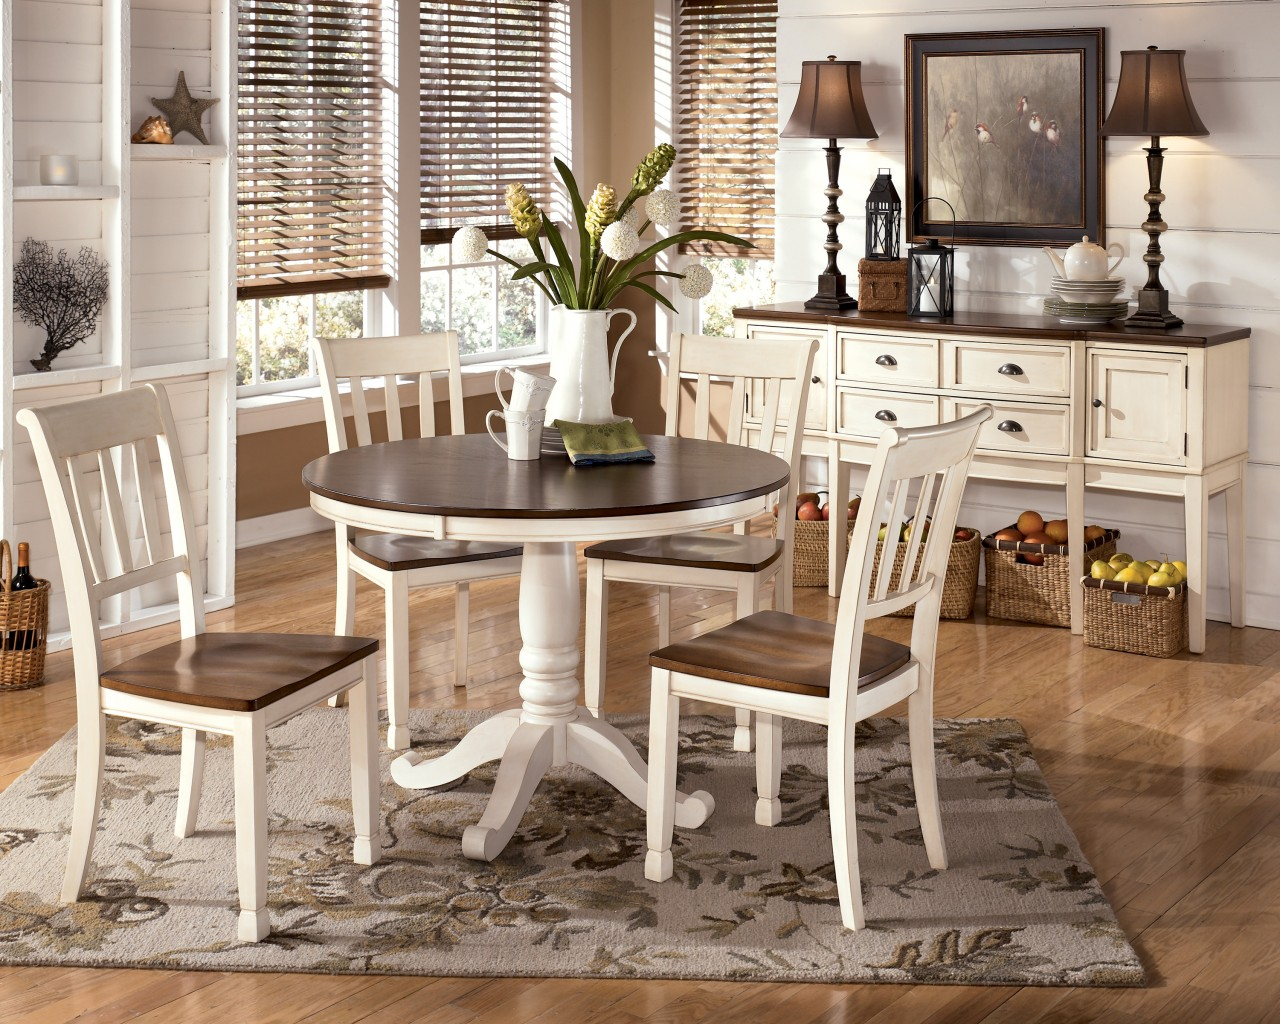 Picture of: White Pedestal Dining Table and Chairs